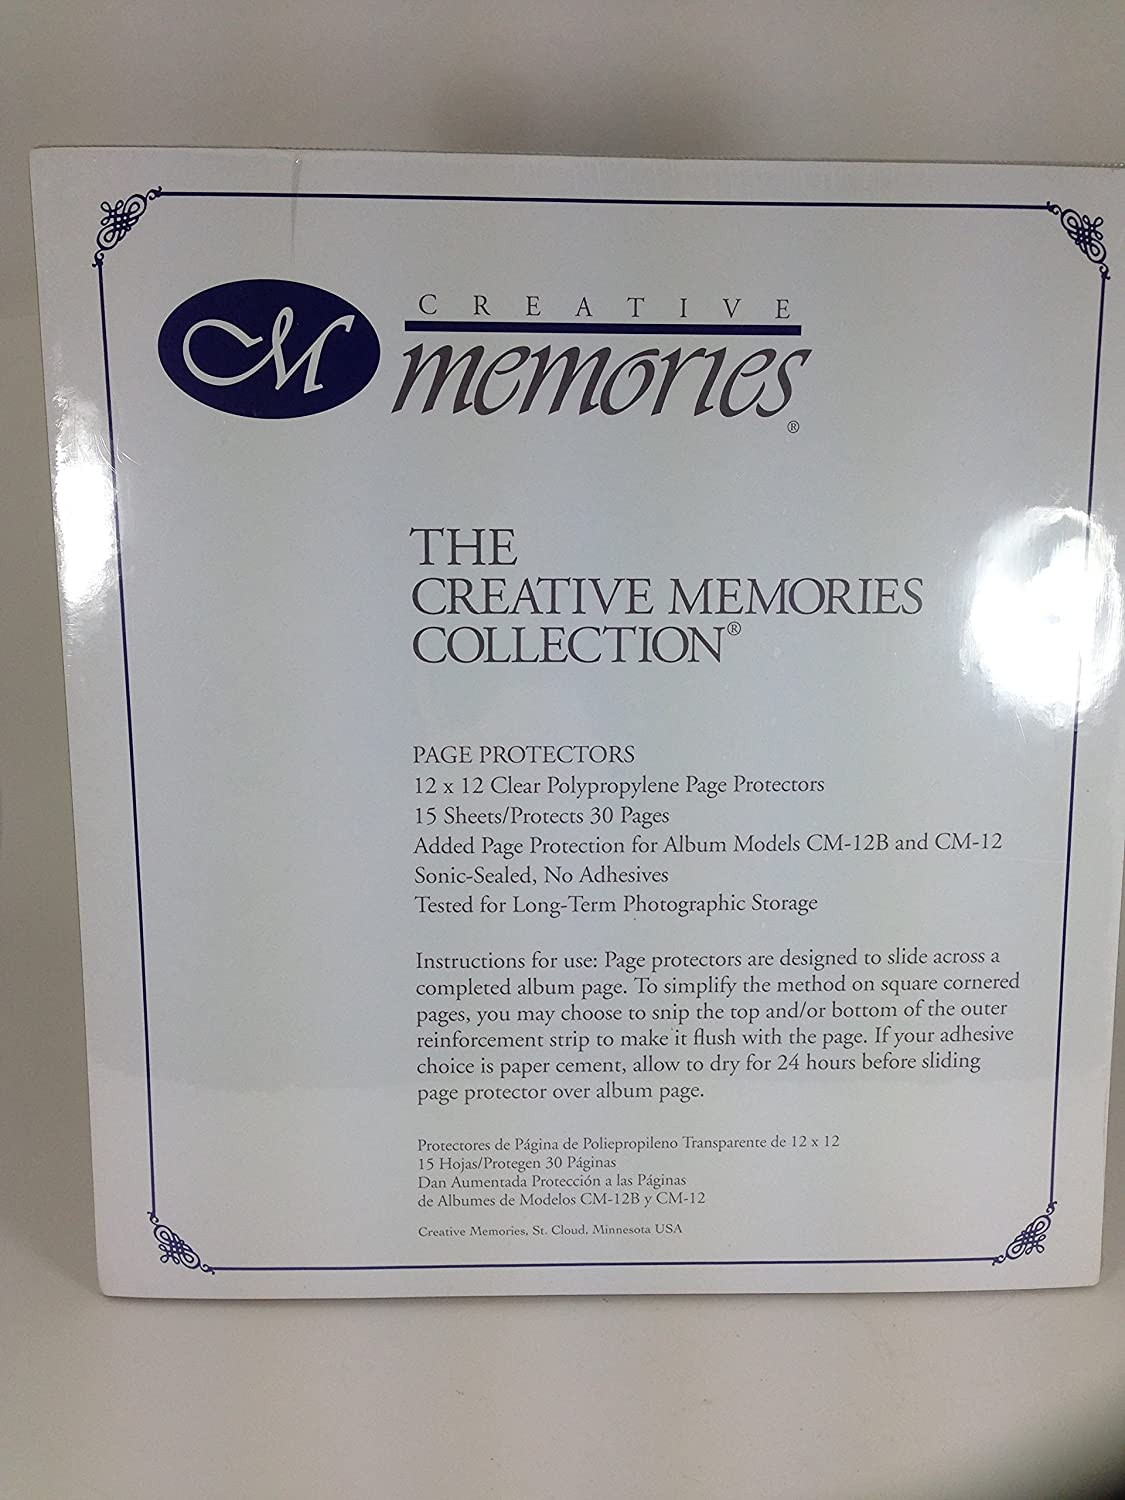 Creative Creative Creative Memories Page Protectors for Retired 12x12 Scrapbook Pages by The Creative Memories Collection f1cffb